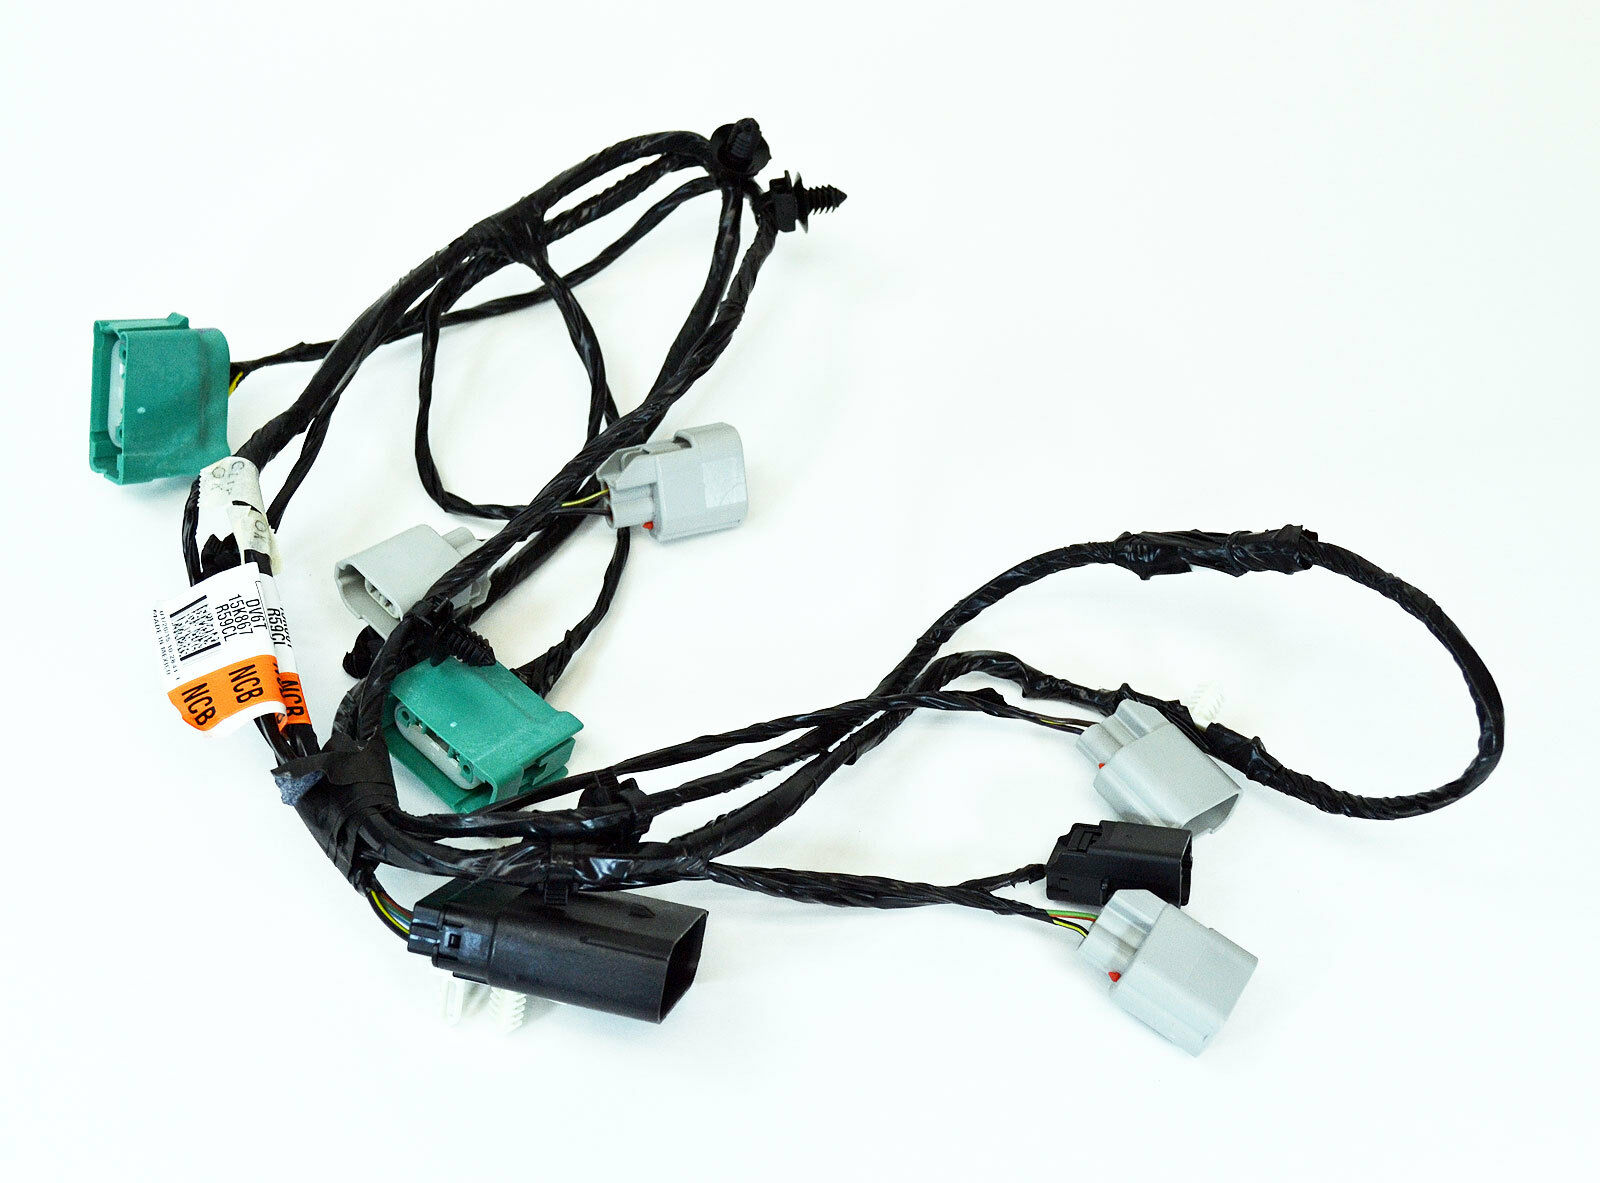 s l1600 ford oem headlight wiring harness dv6z15k867c image 31 ebay oem 2010 sentra headlight wiring harness plug at nearapp.co